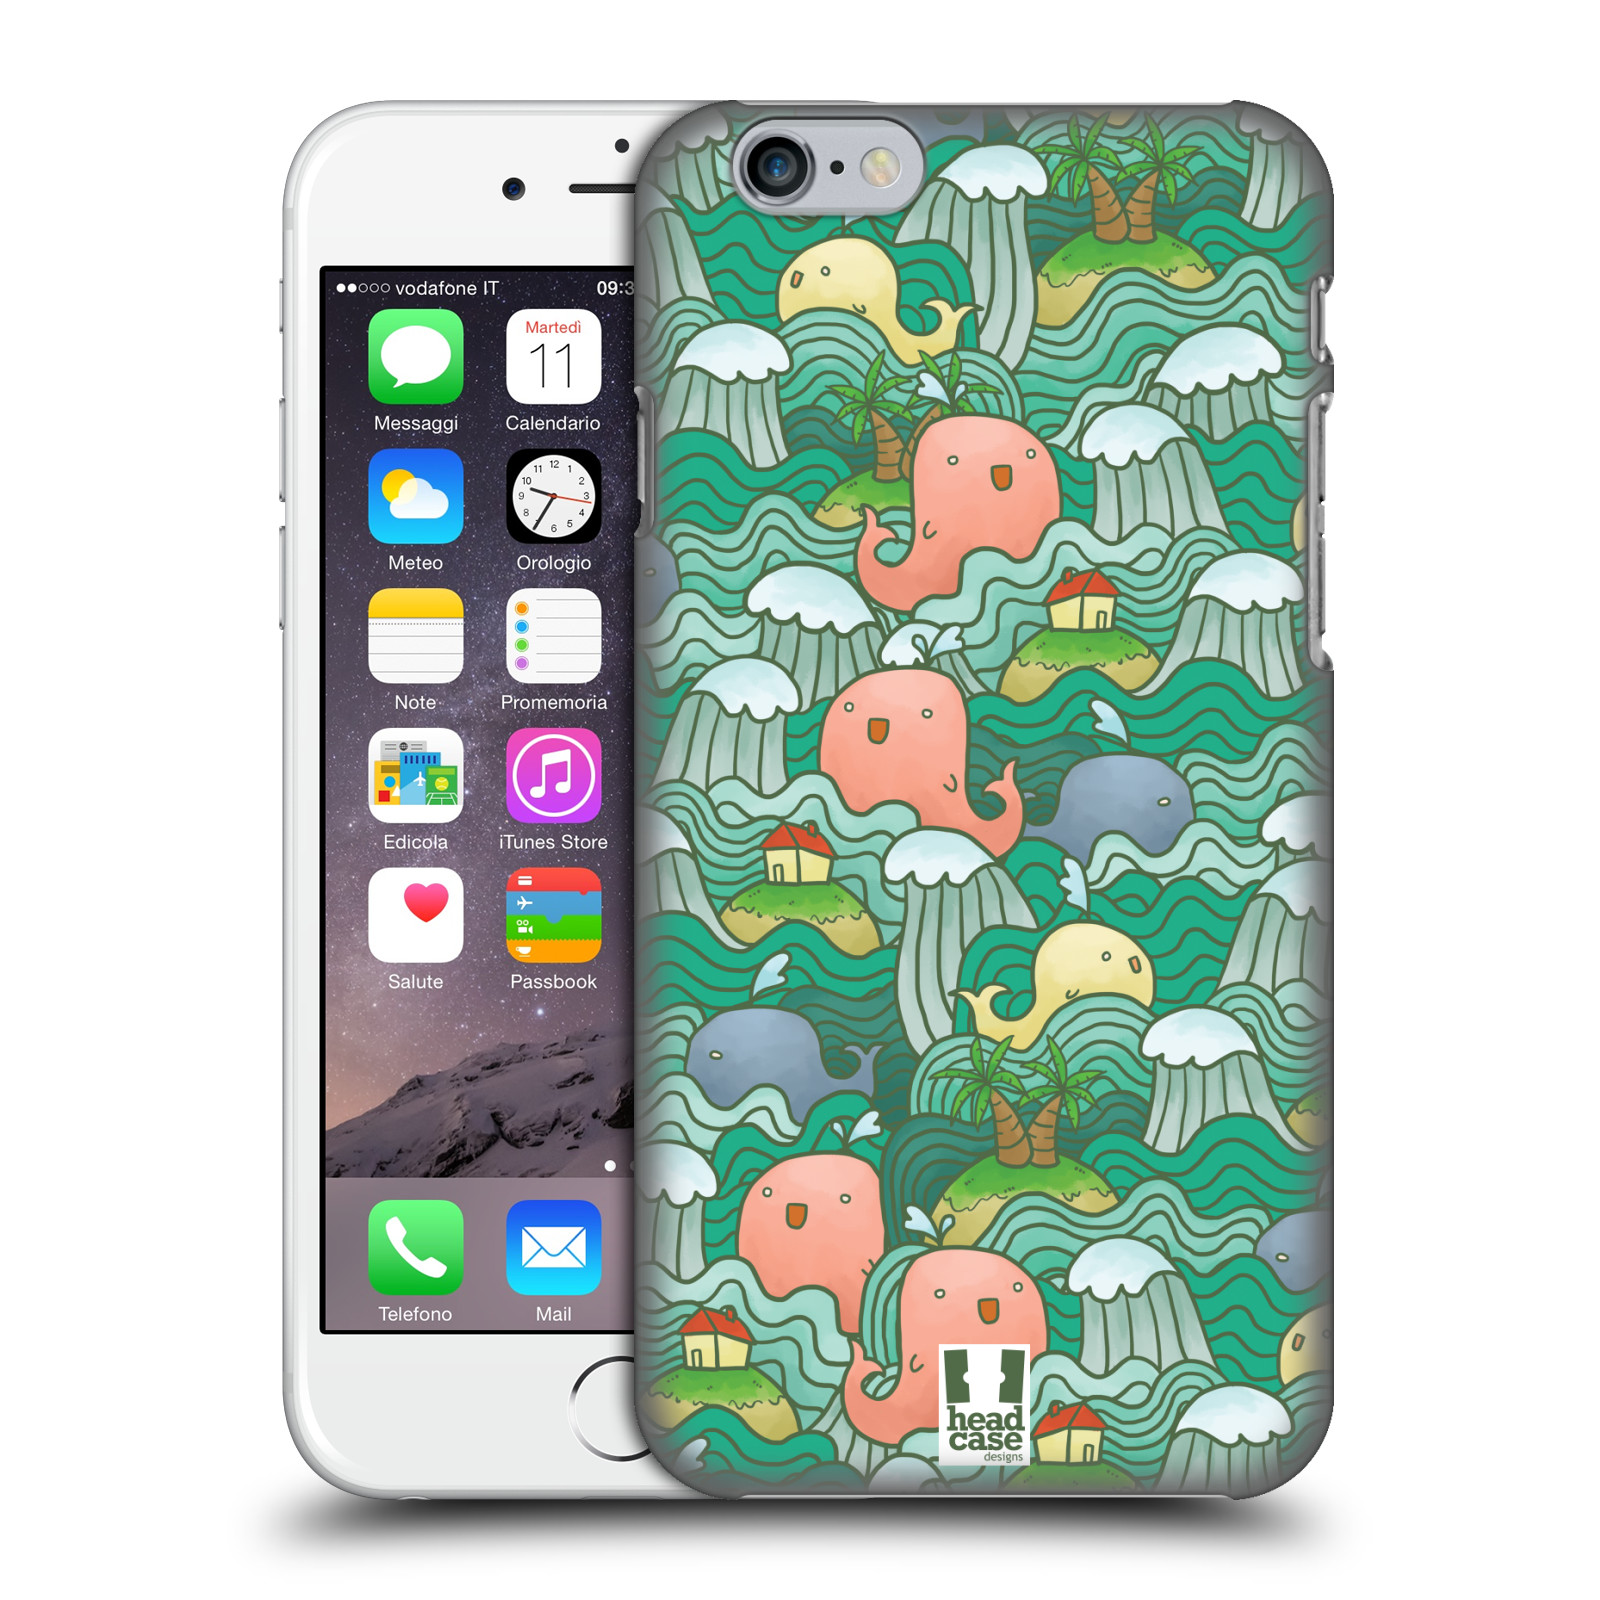 HEAD CASE DESIGNS OCEAN WAVE DOODLES HARD BACK CASE FOR APPLE iPHONE PHONES